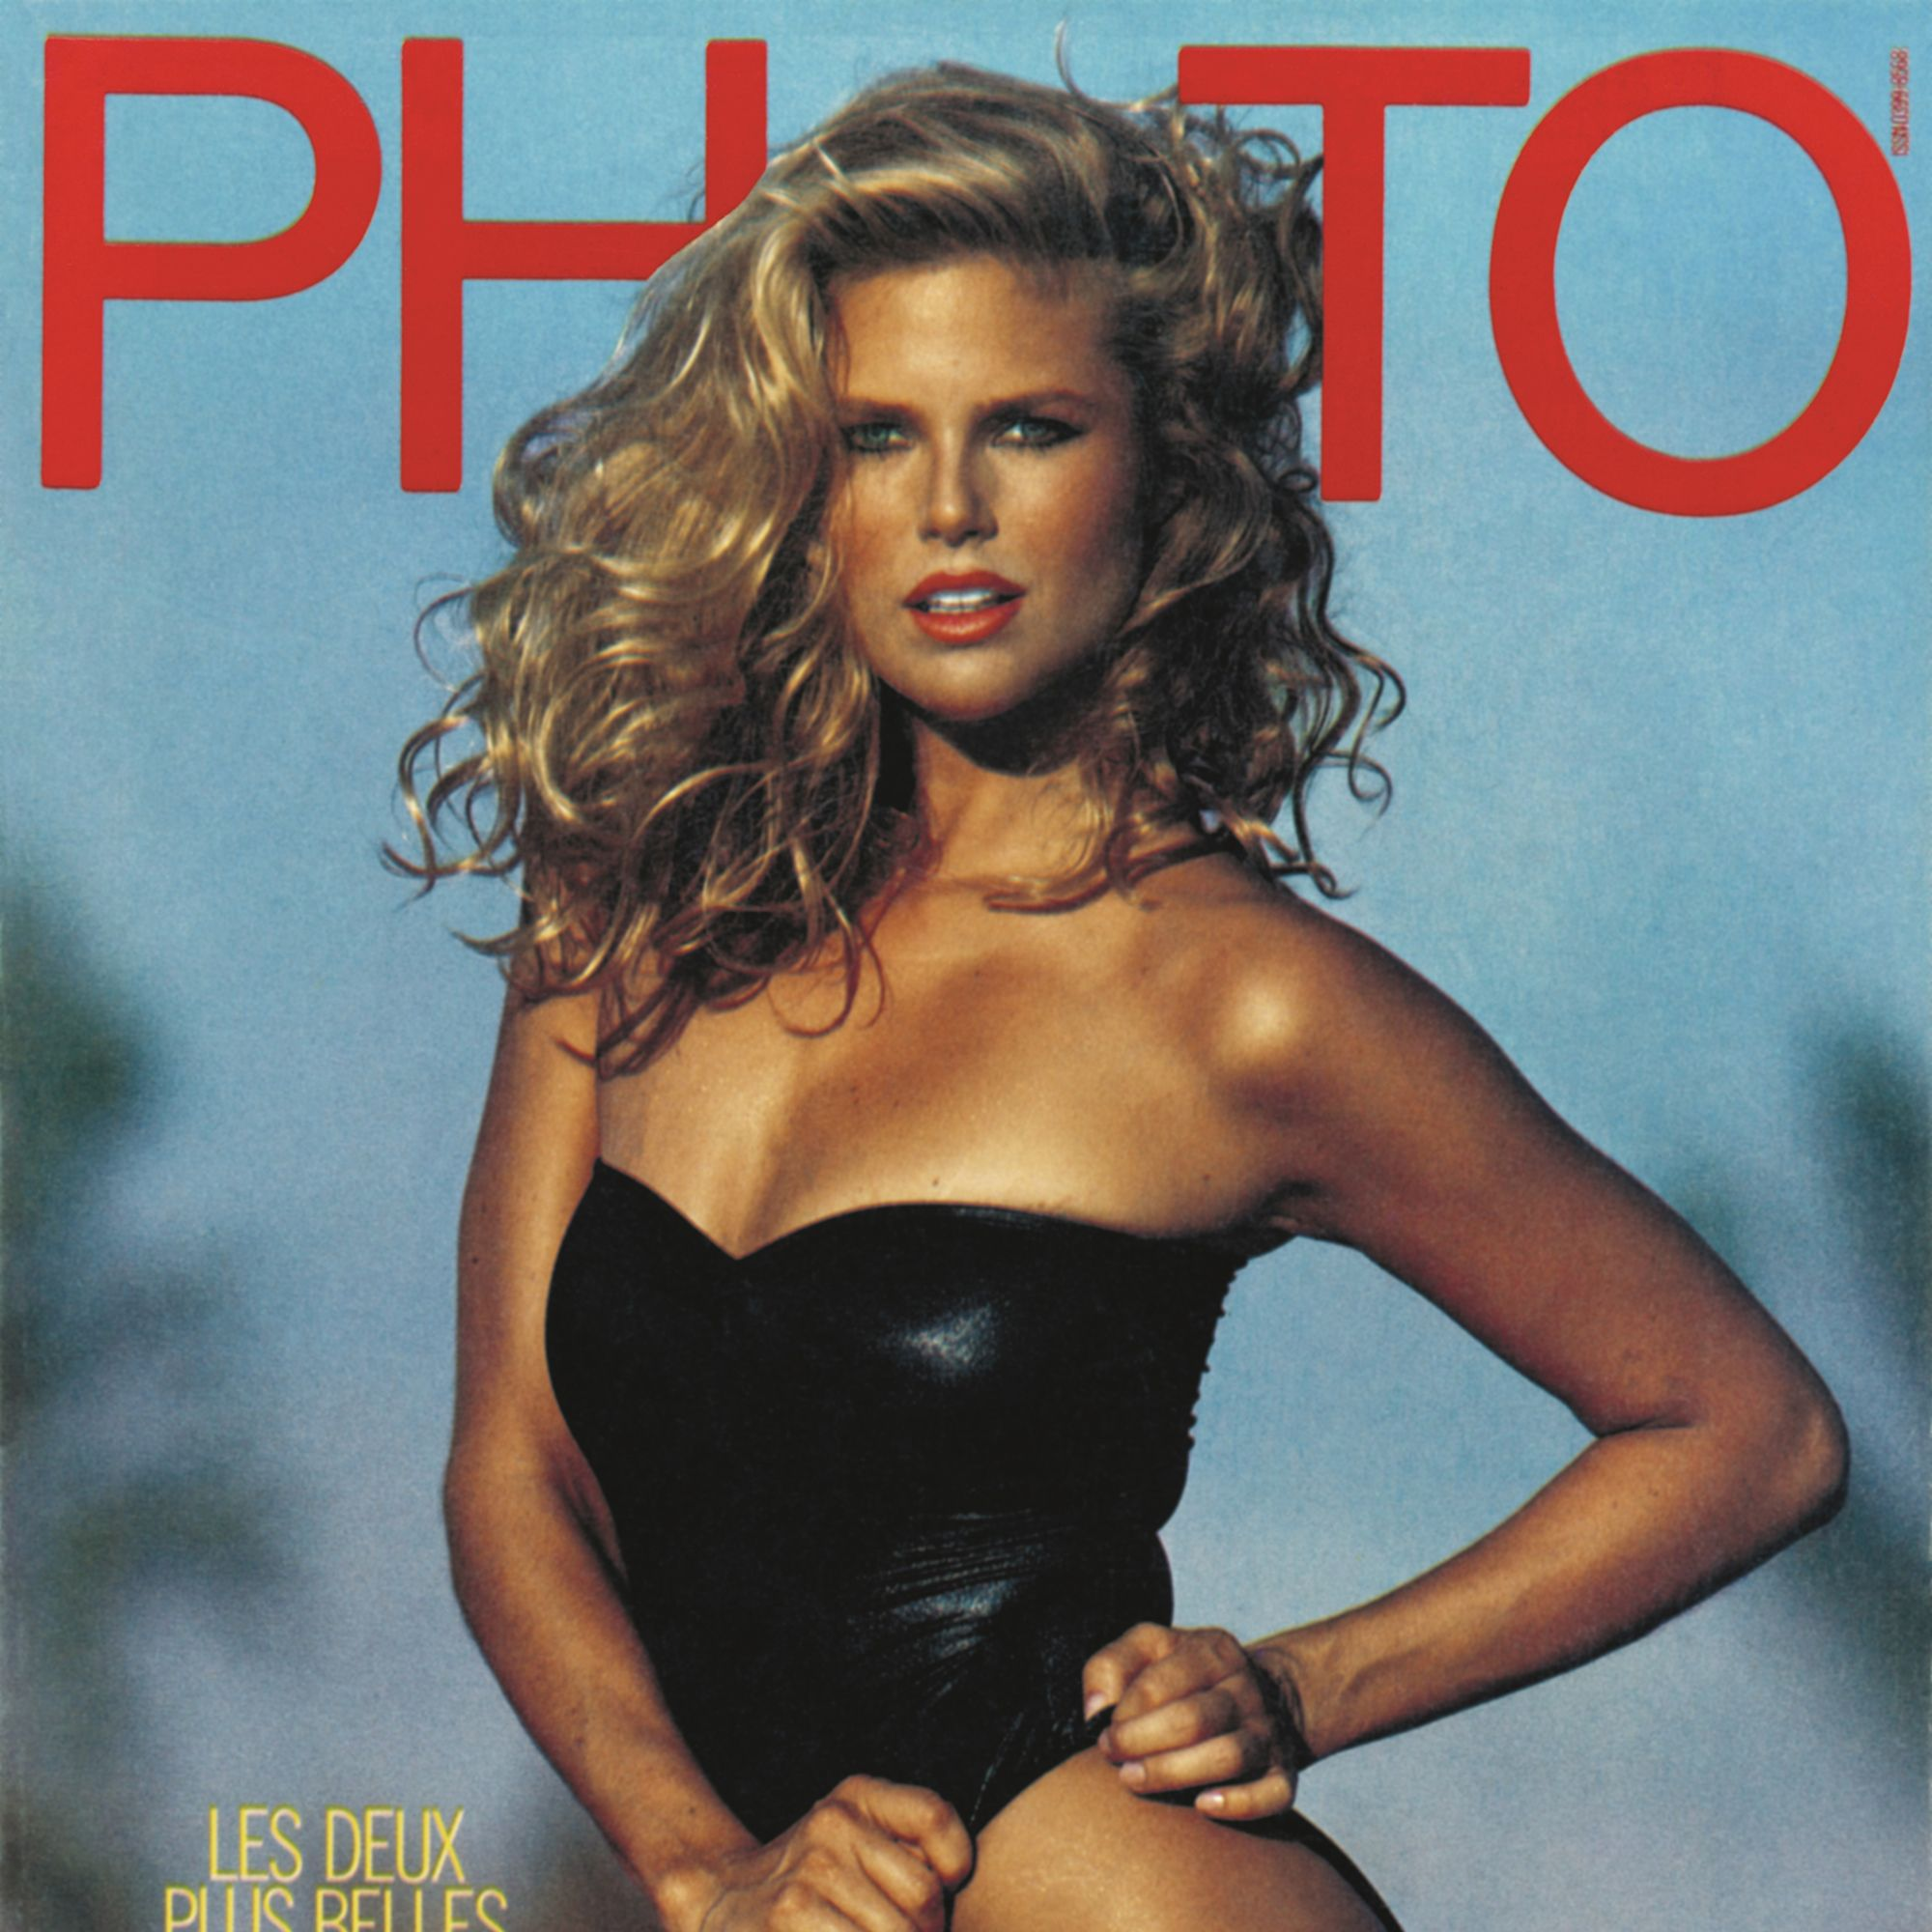 Christie Brinkley photographed by Mike Reinhardt, 1983